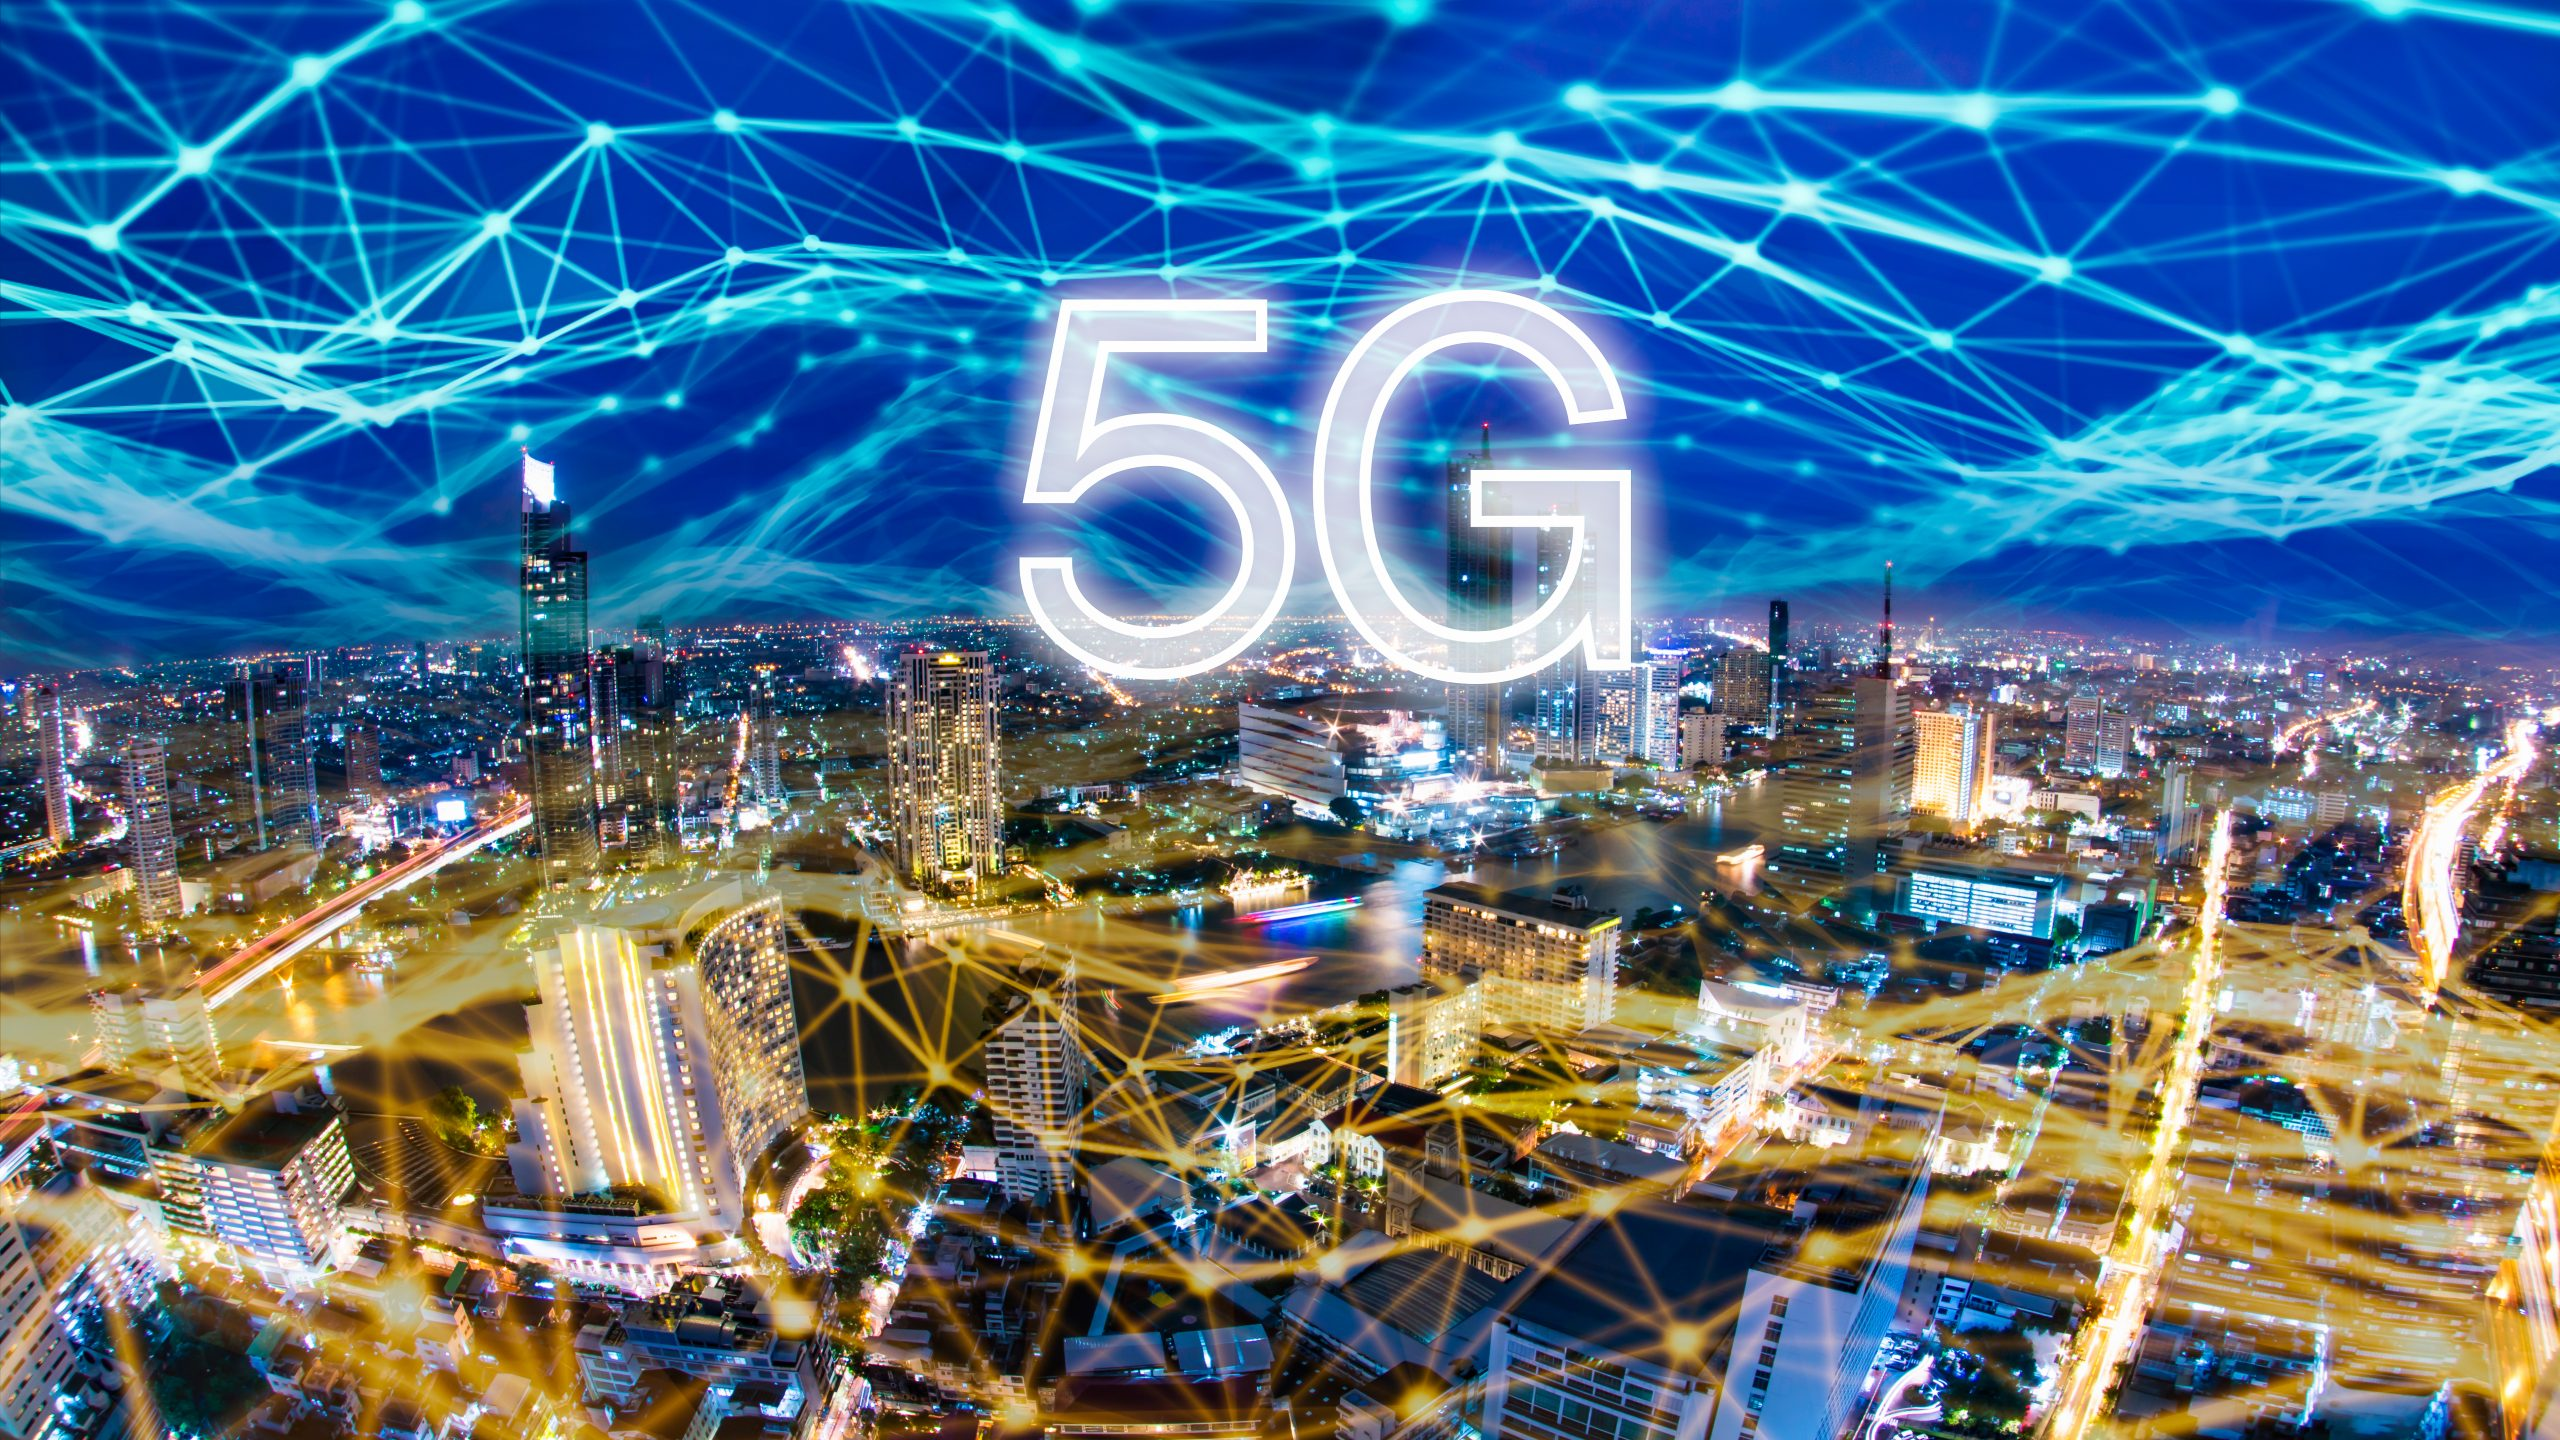 Frequencies and 5G